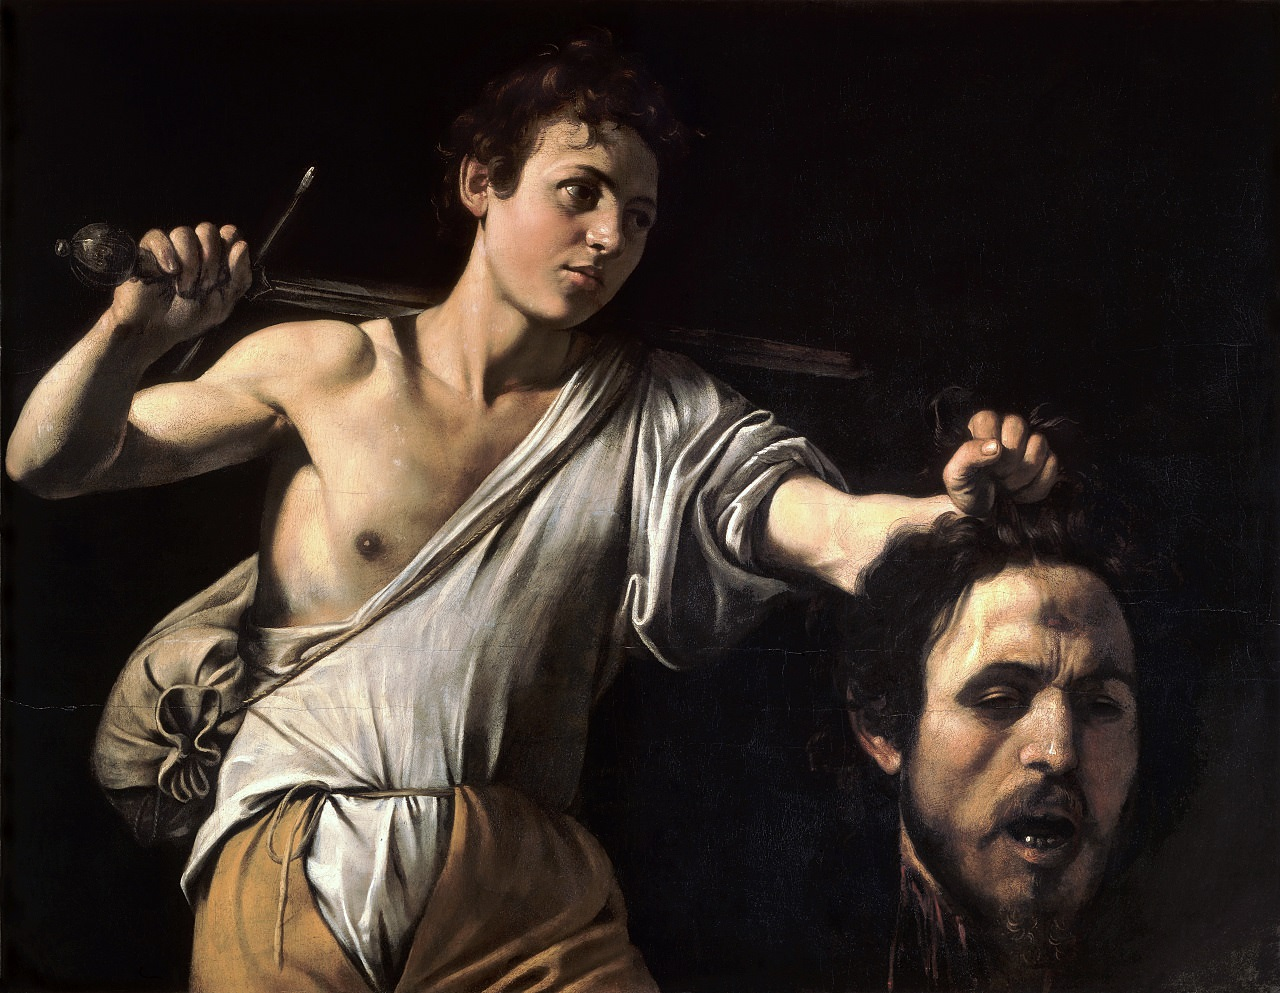 David and Goliath (David with the Head of Goliath) by Michelangelo Merisi da Caravaggio in Kunsthistorisches Museum, Vienna